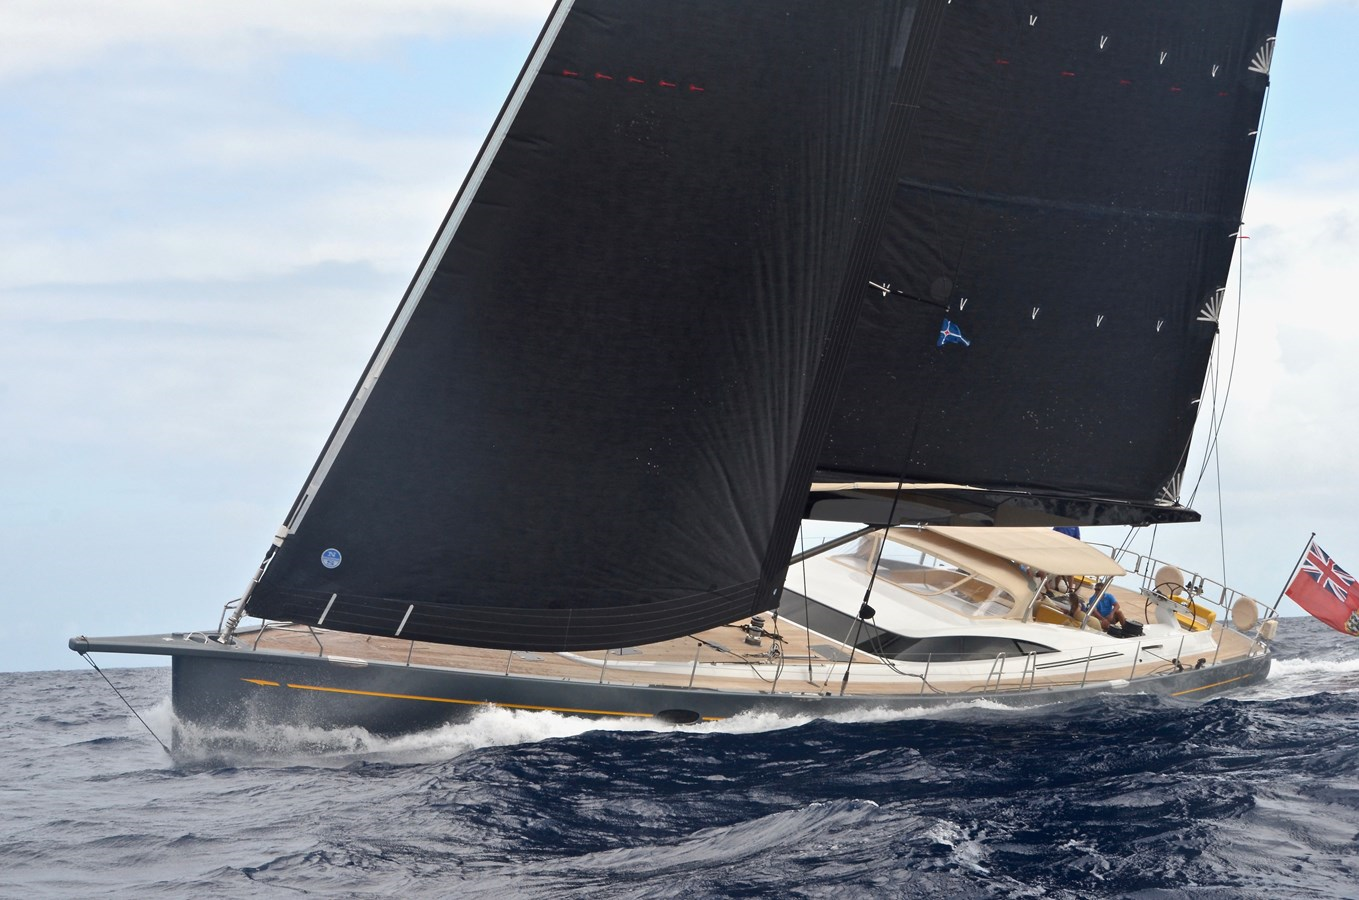 This is the home page detailing Owen Clarke's work as yacht designers and naval architects in the superyacht industry, which includes consultancy, refit and new design to third parties. In addiiton OCD undertakes performance analysis onboard and act as consultants to clients optimising boats to the new ORCsy Superyacht Rule.